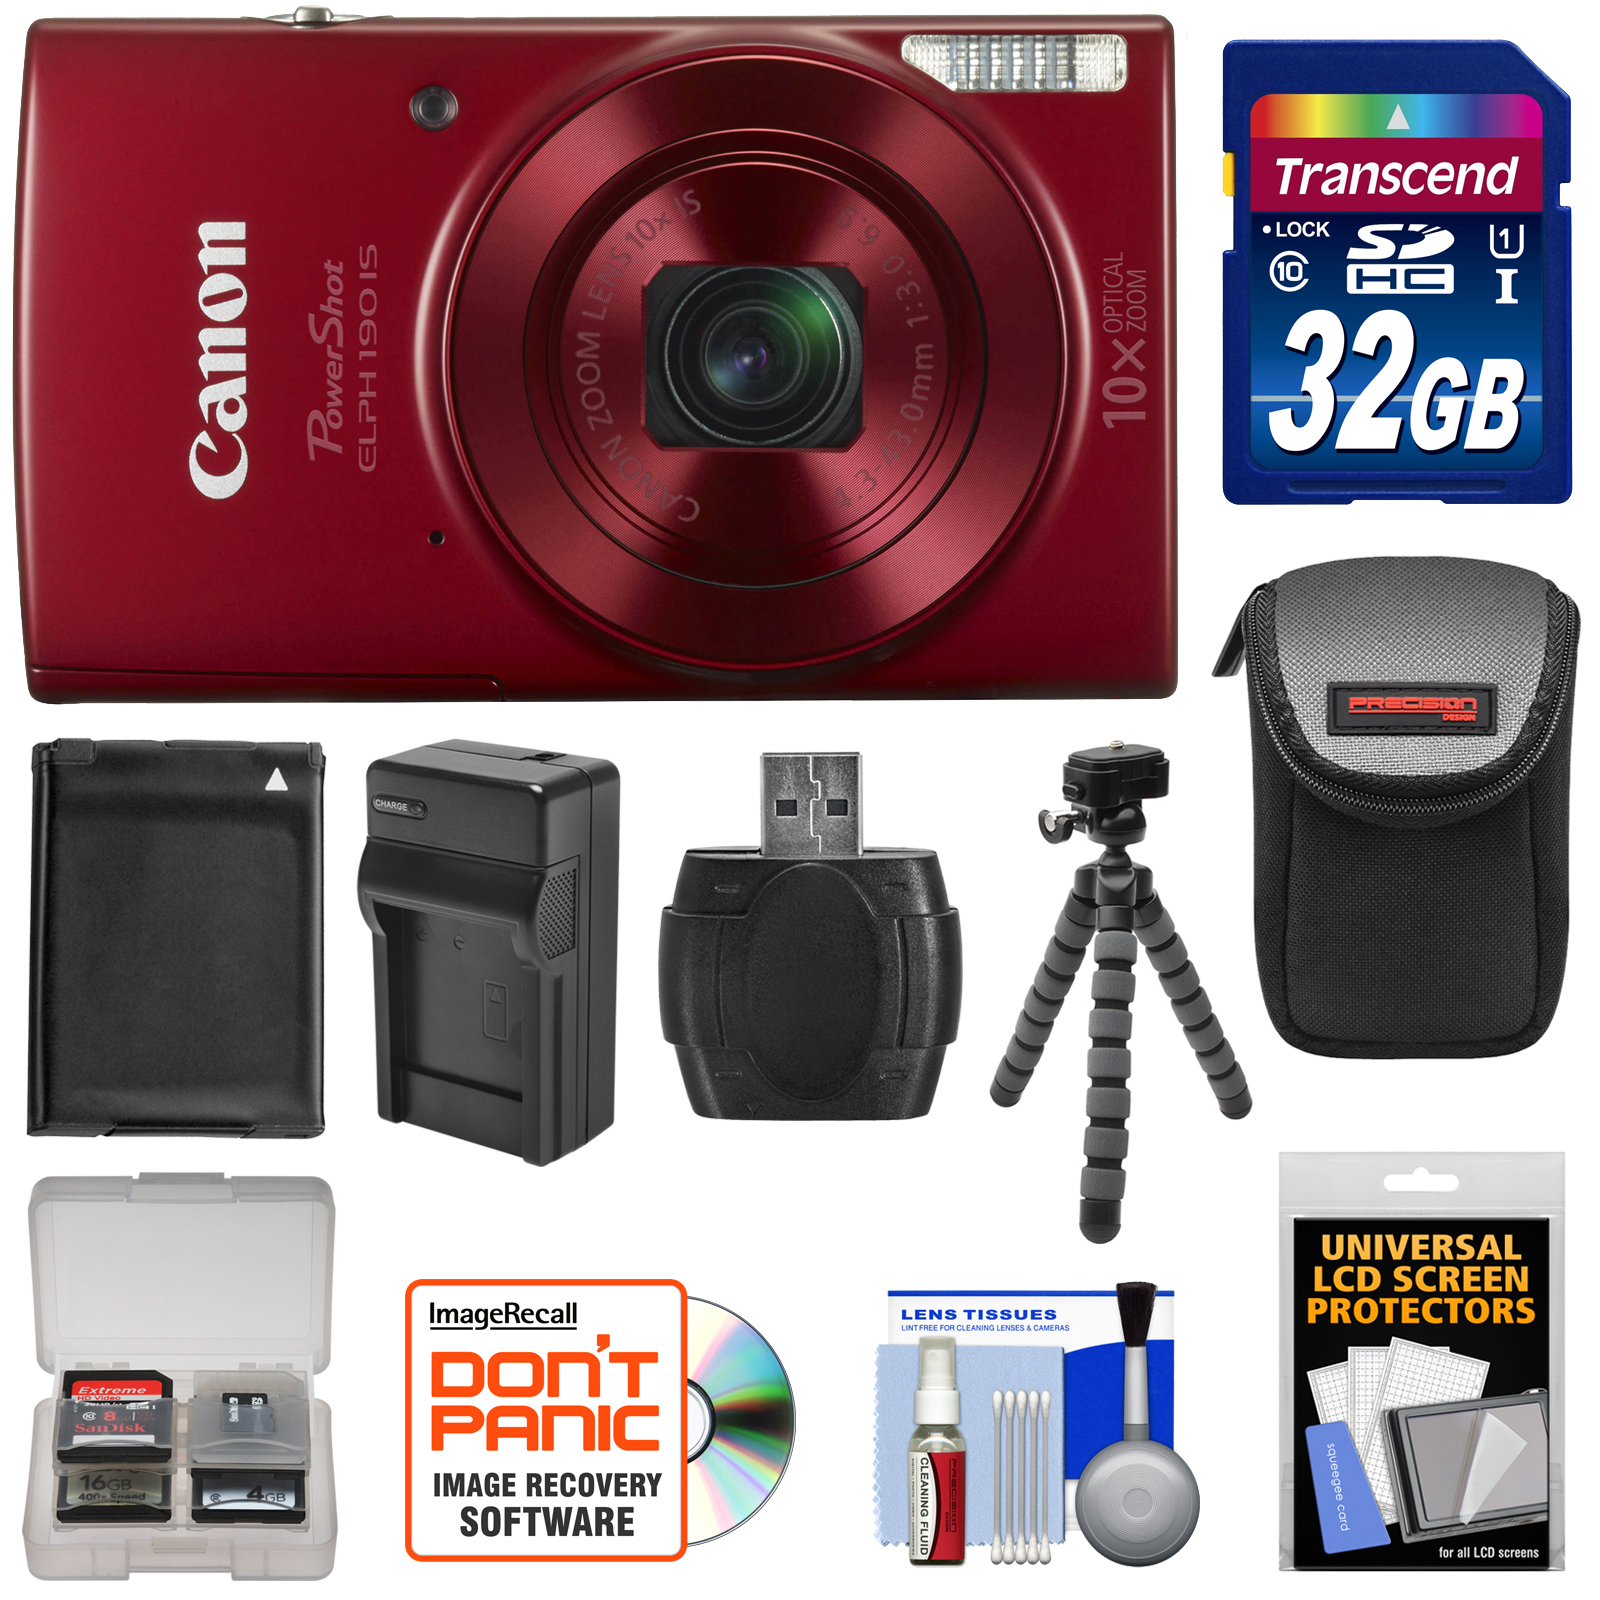 Canon PowerShot Elph 190 IS Wi-Fi Digital Camera (Red) wi...